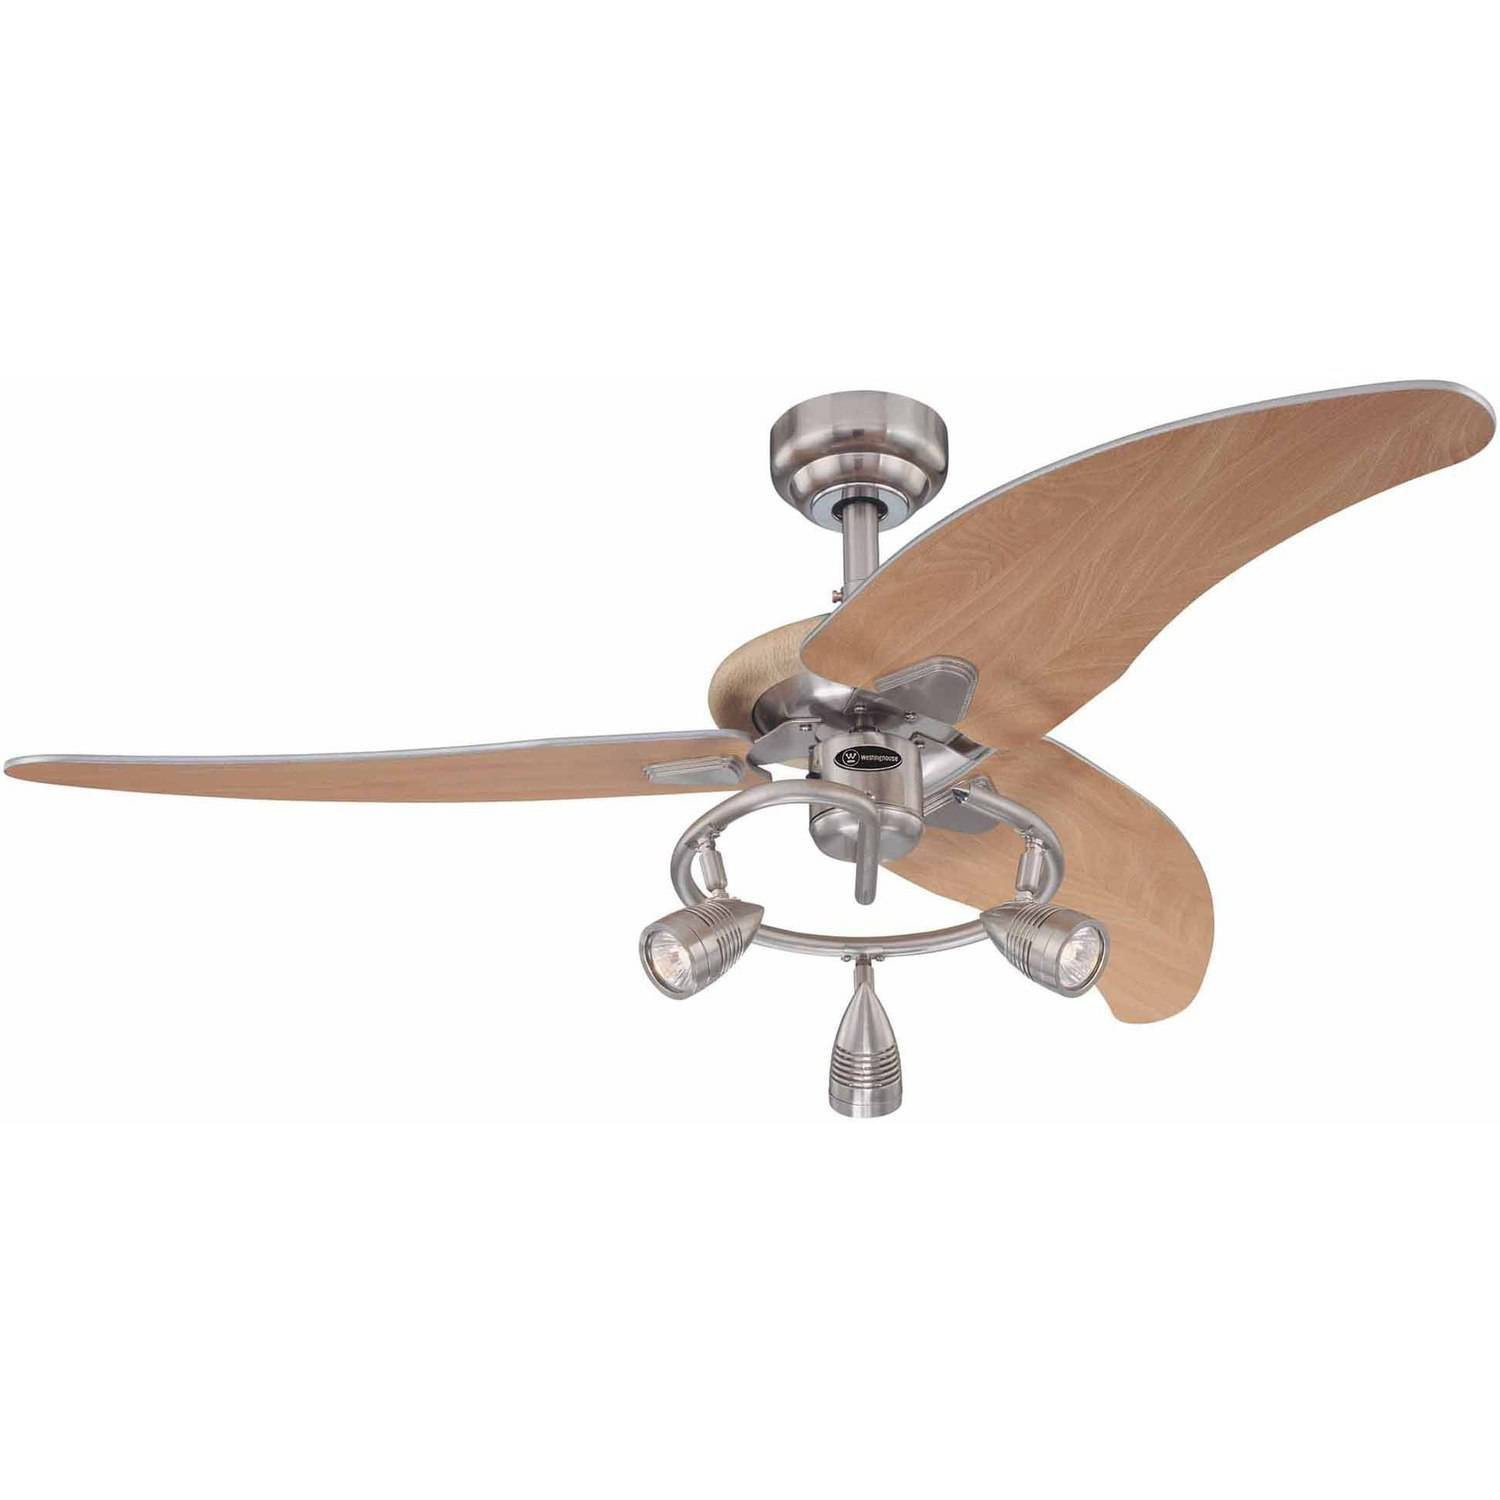 refurbished-ceiling-fans-photo-11